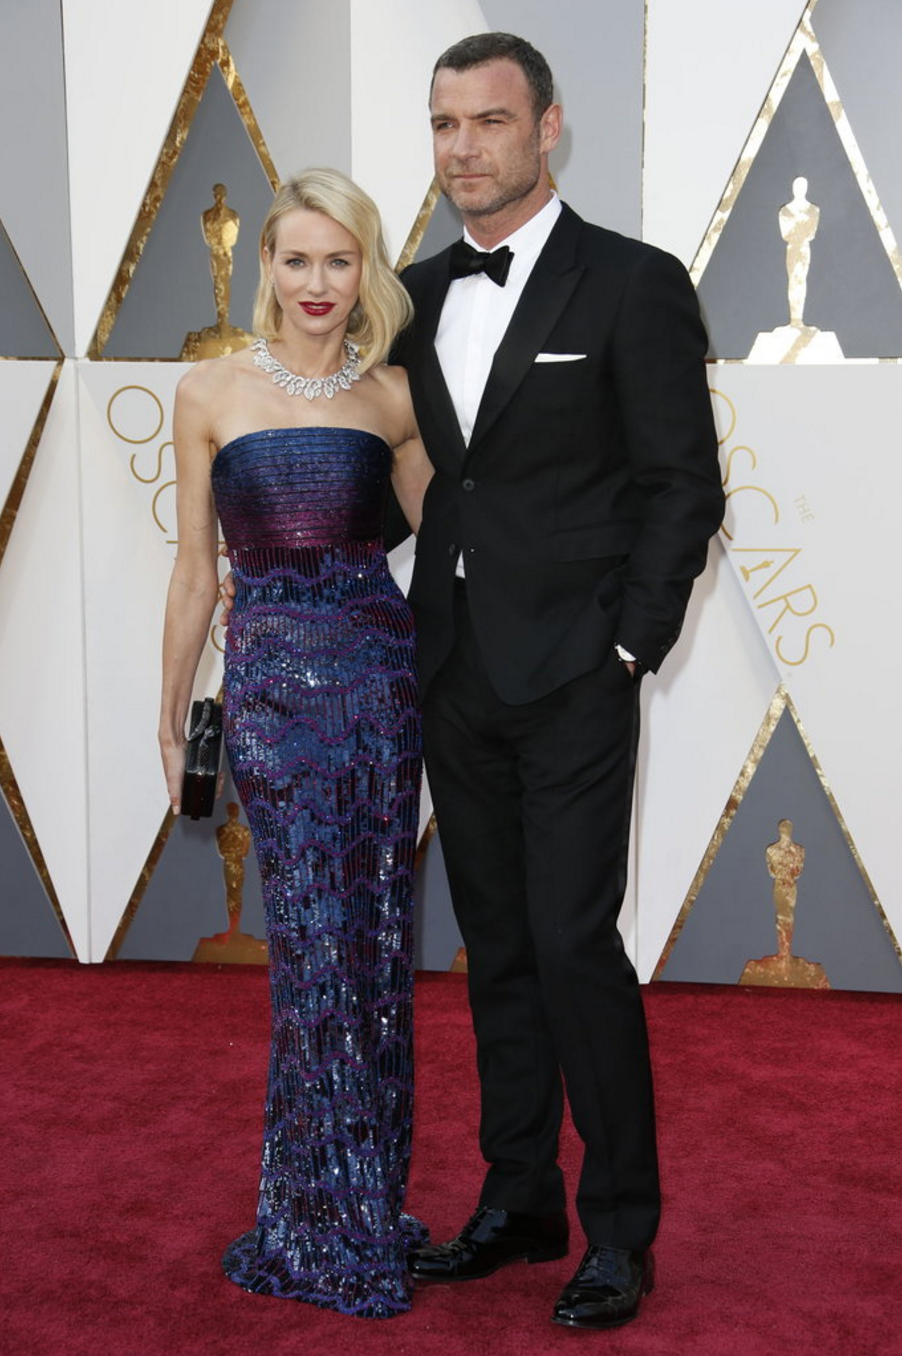 Naomi Watts in Armani Privé and Liev Schreiber